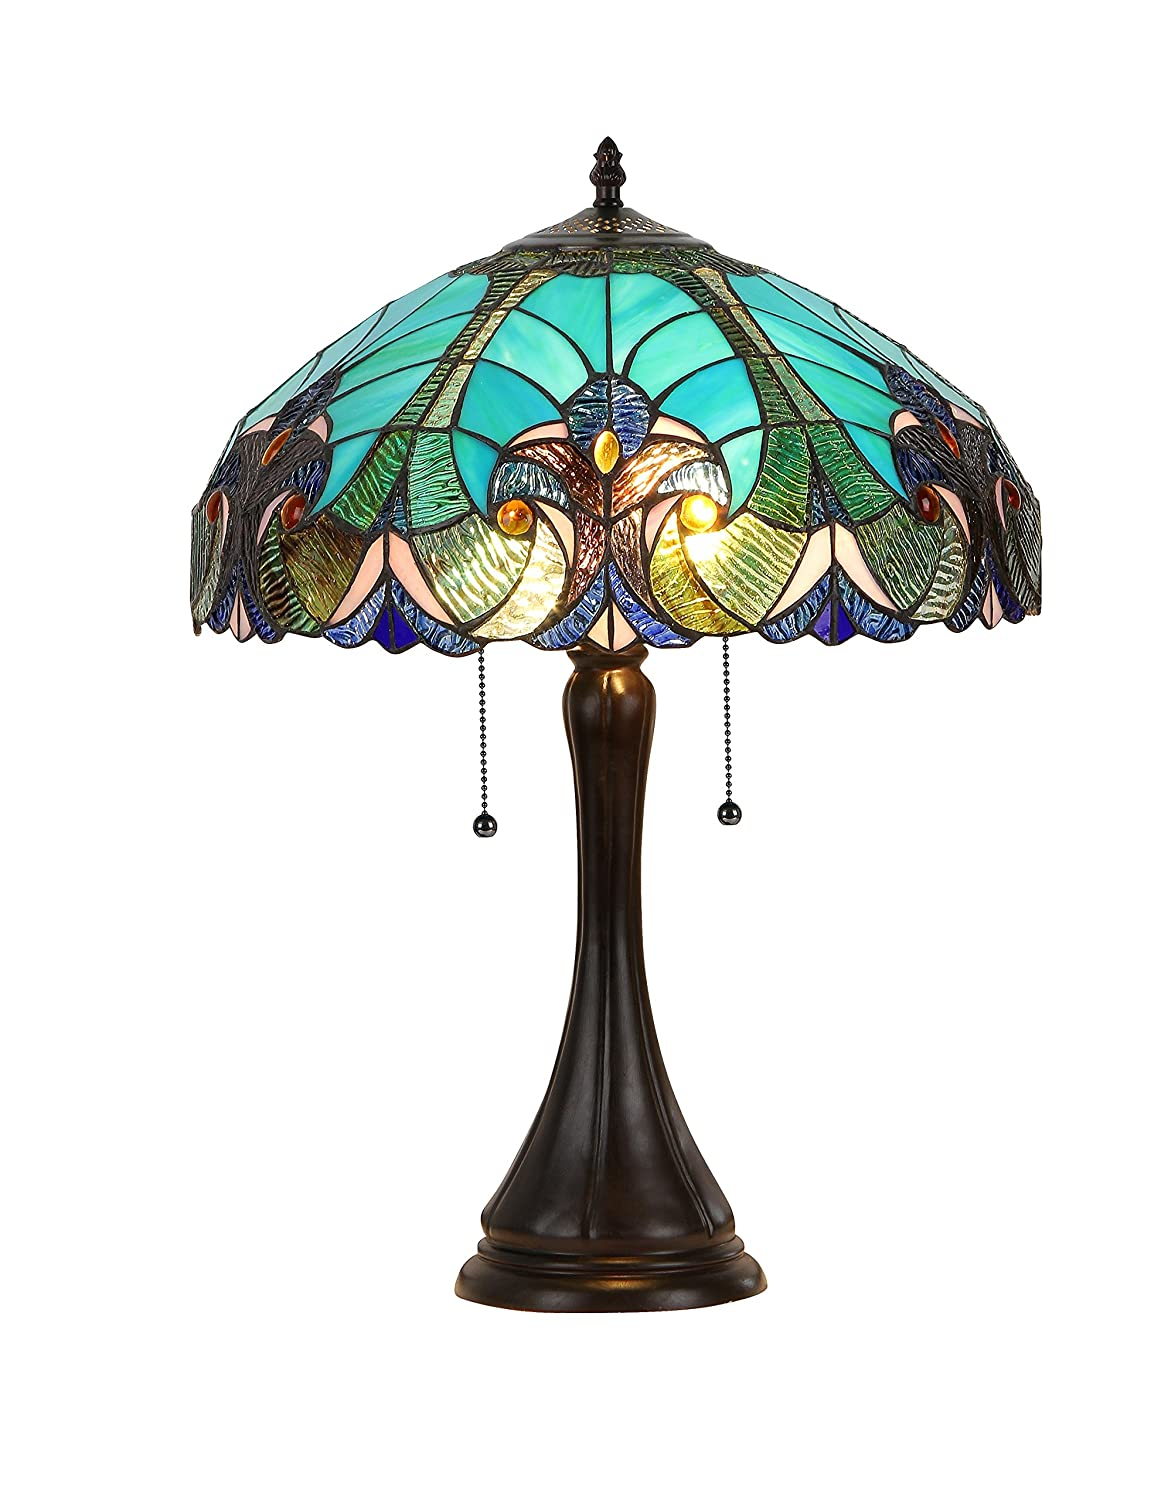 Chloe Lighting CH38780VG16 TL2 Tiffany Style Victorian 2 Light Table Lamp  16 Inch Shade, Multi Colored     Amazon.com